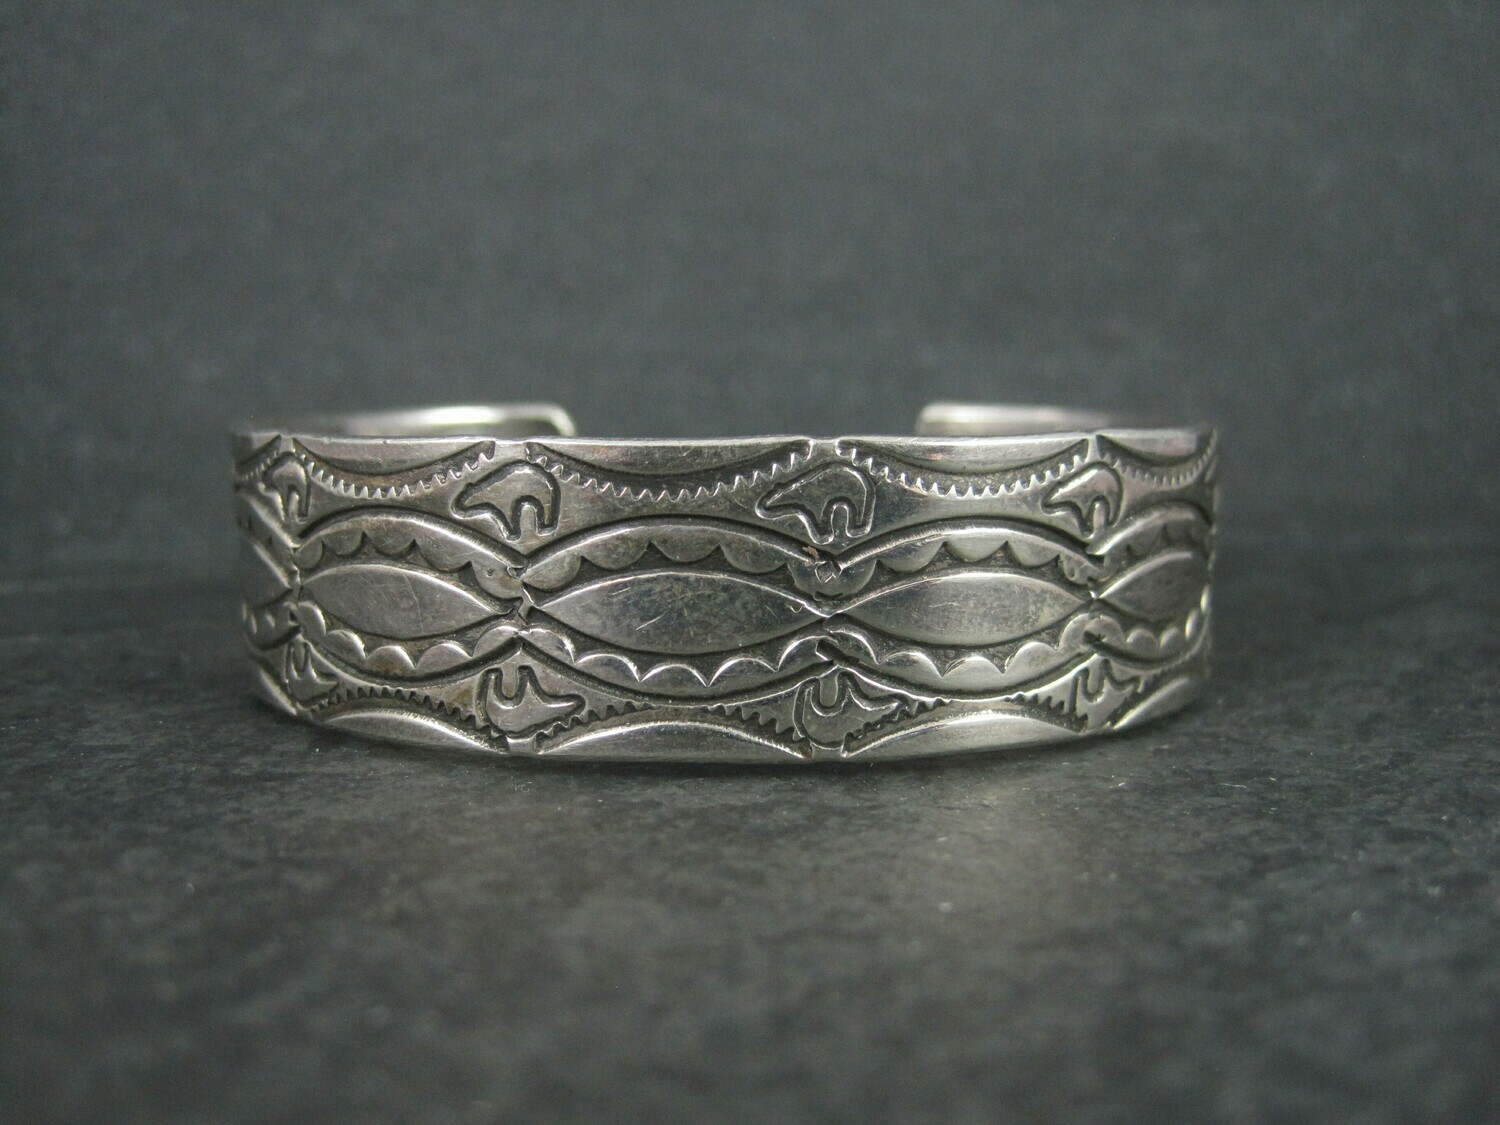 Southwestern Sterling Spirit Bear Cuff Bracelet 6.75 Inches